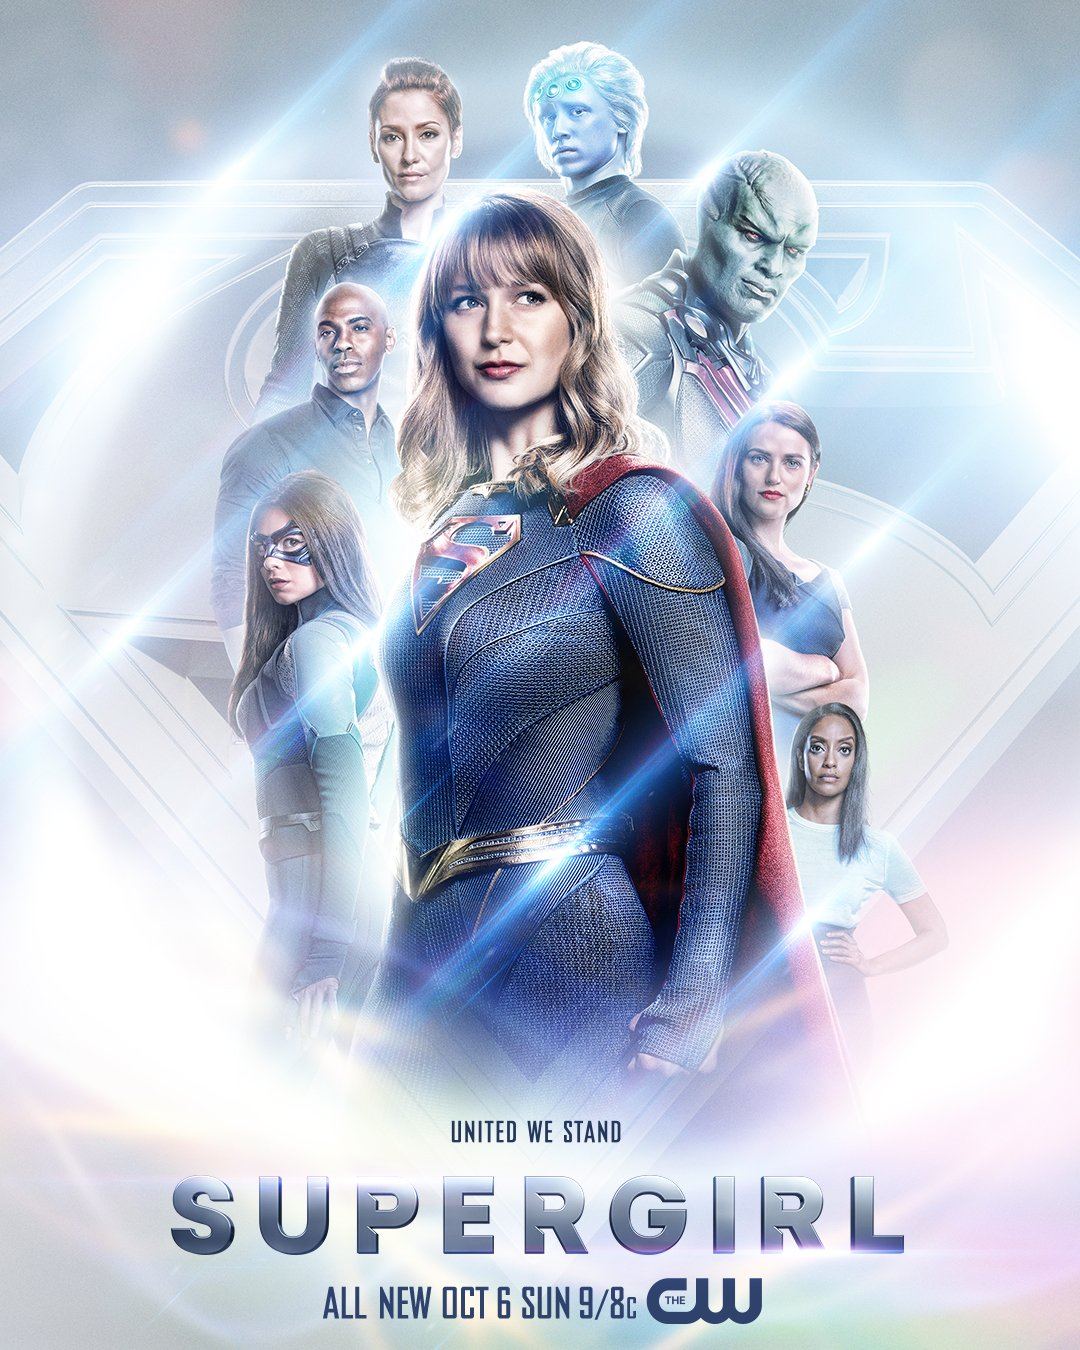 Supergirl season 5 poster